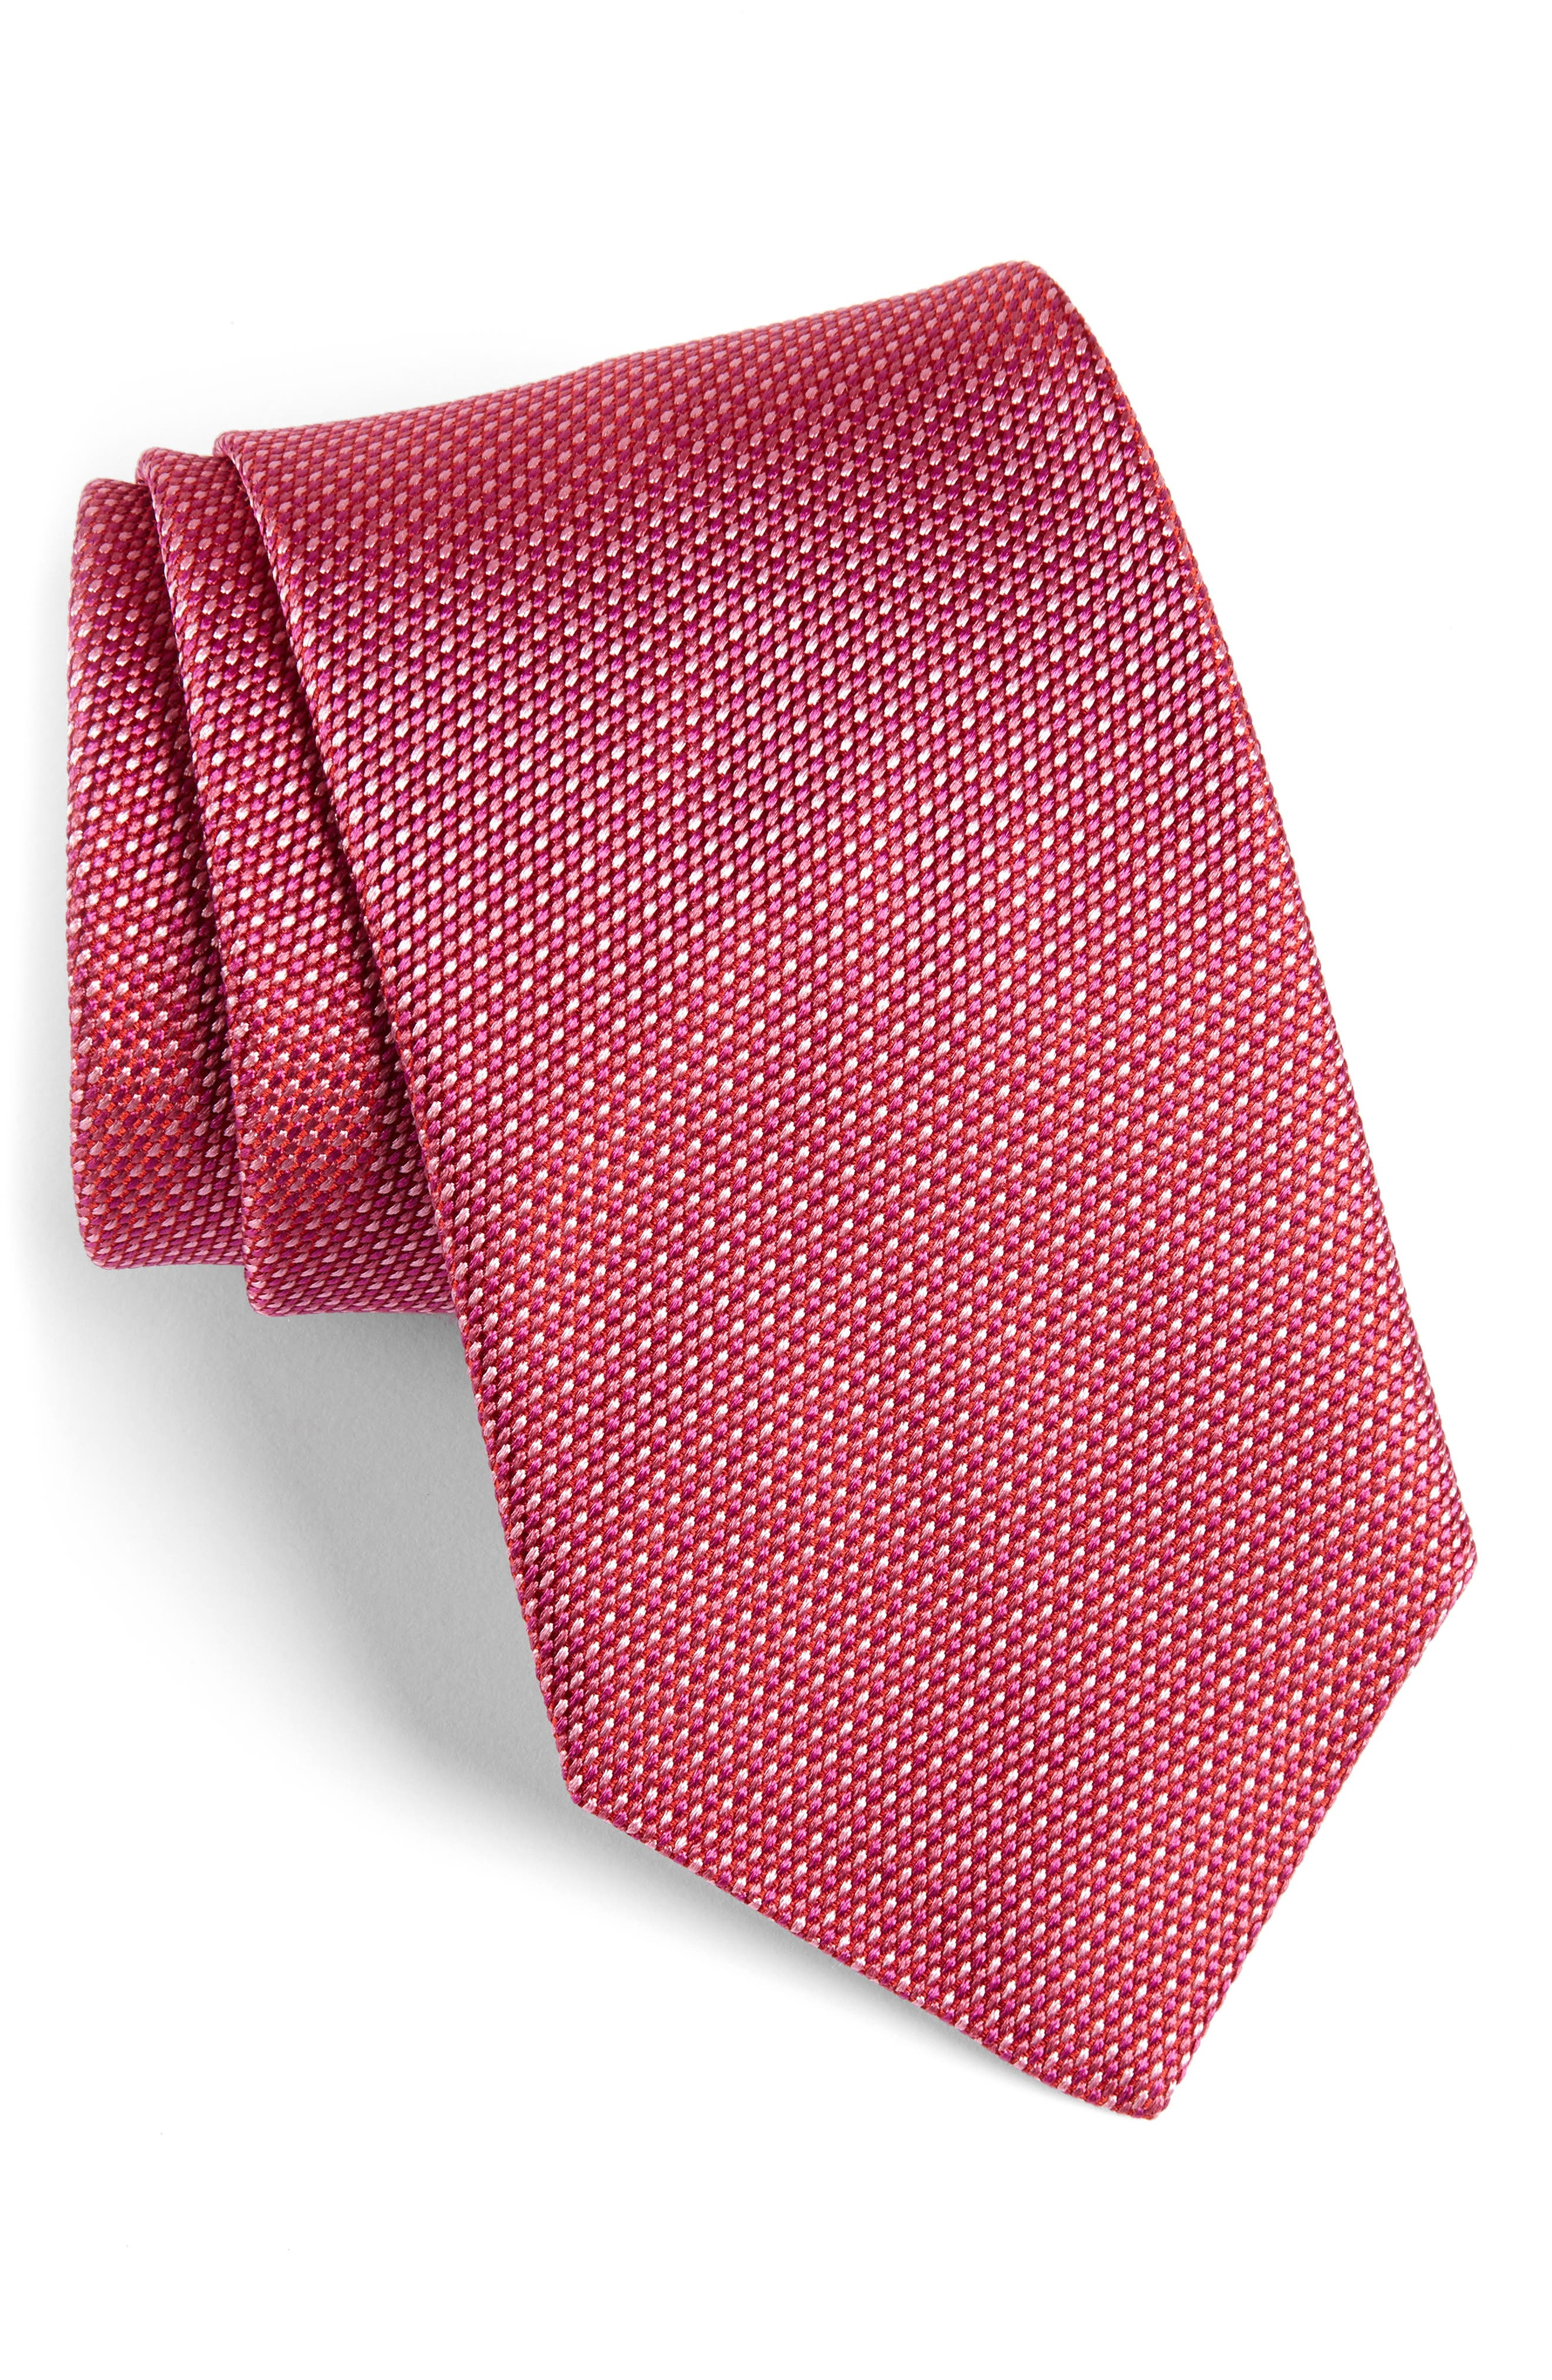 Alternate Image 1 Selected - David Donahue Solid Silk Tie (X-Long)